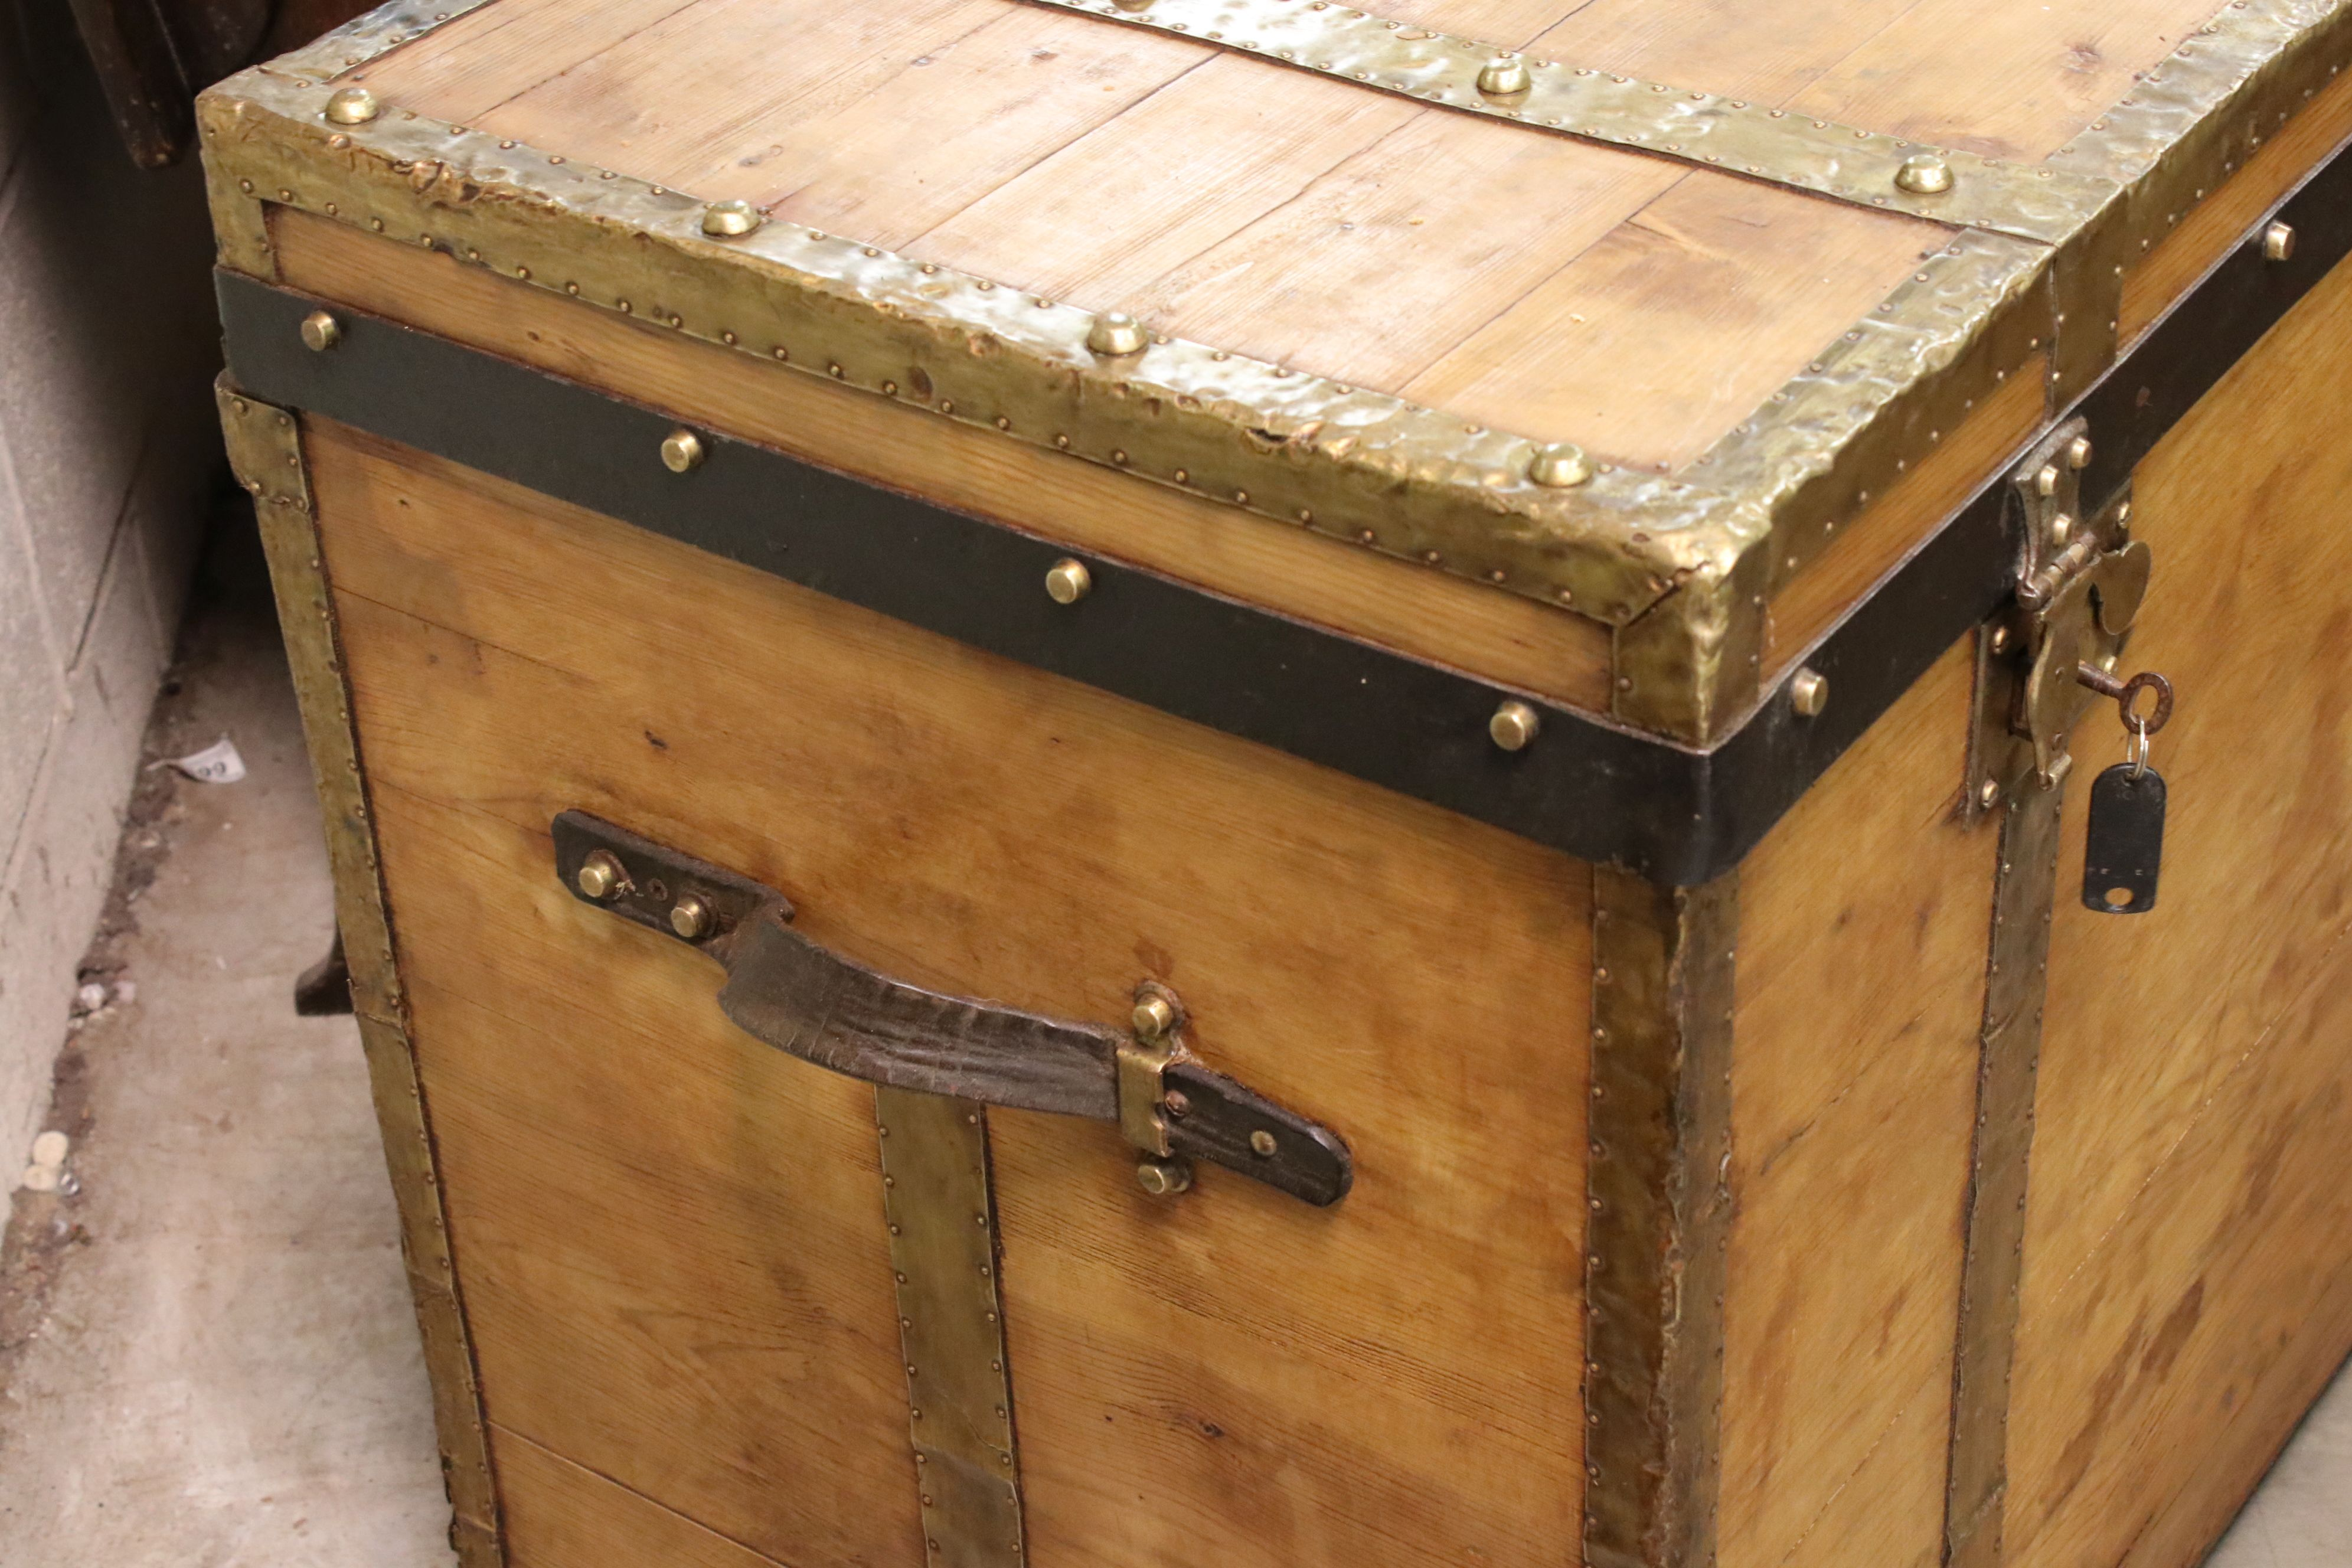 Large vintage pine trunk with brass strapping and locks by Joachim Larsen, Arendal, with leather - Image 2 of 5